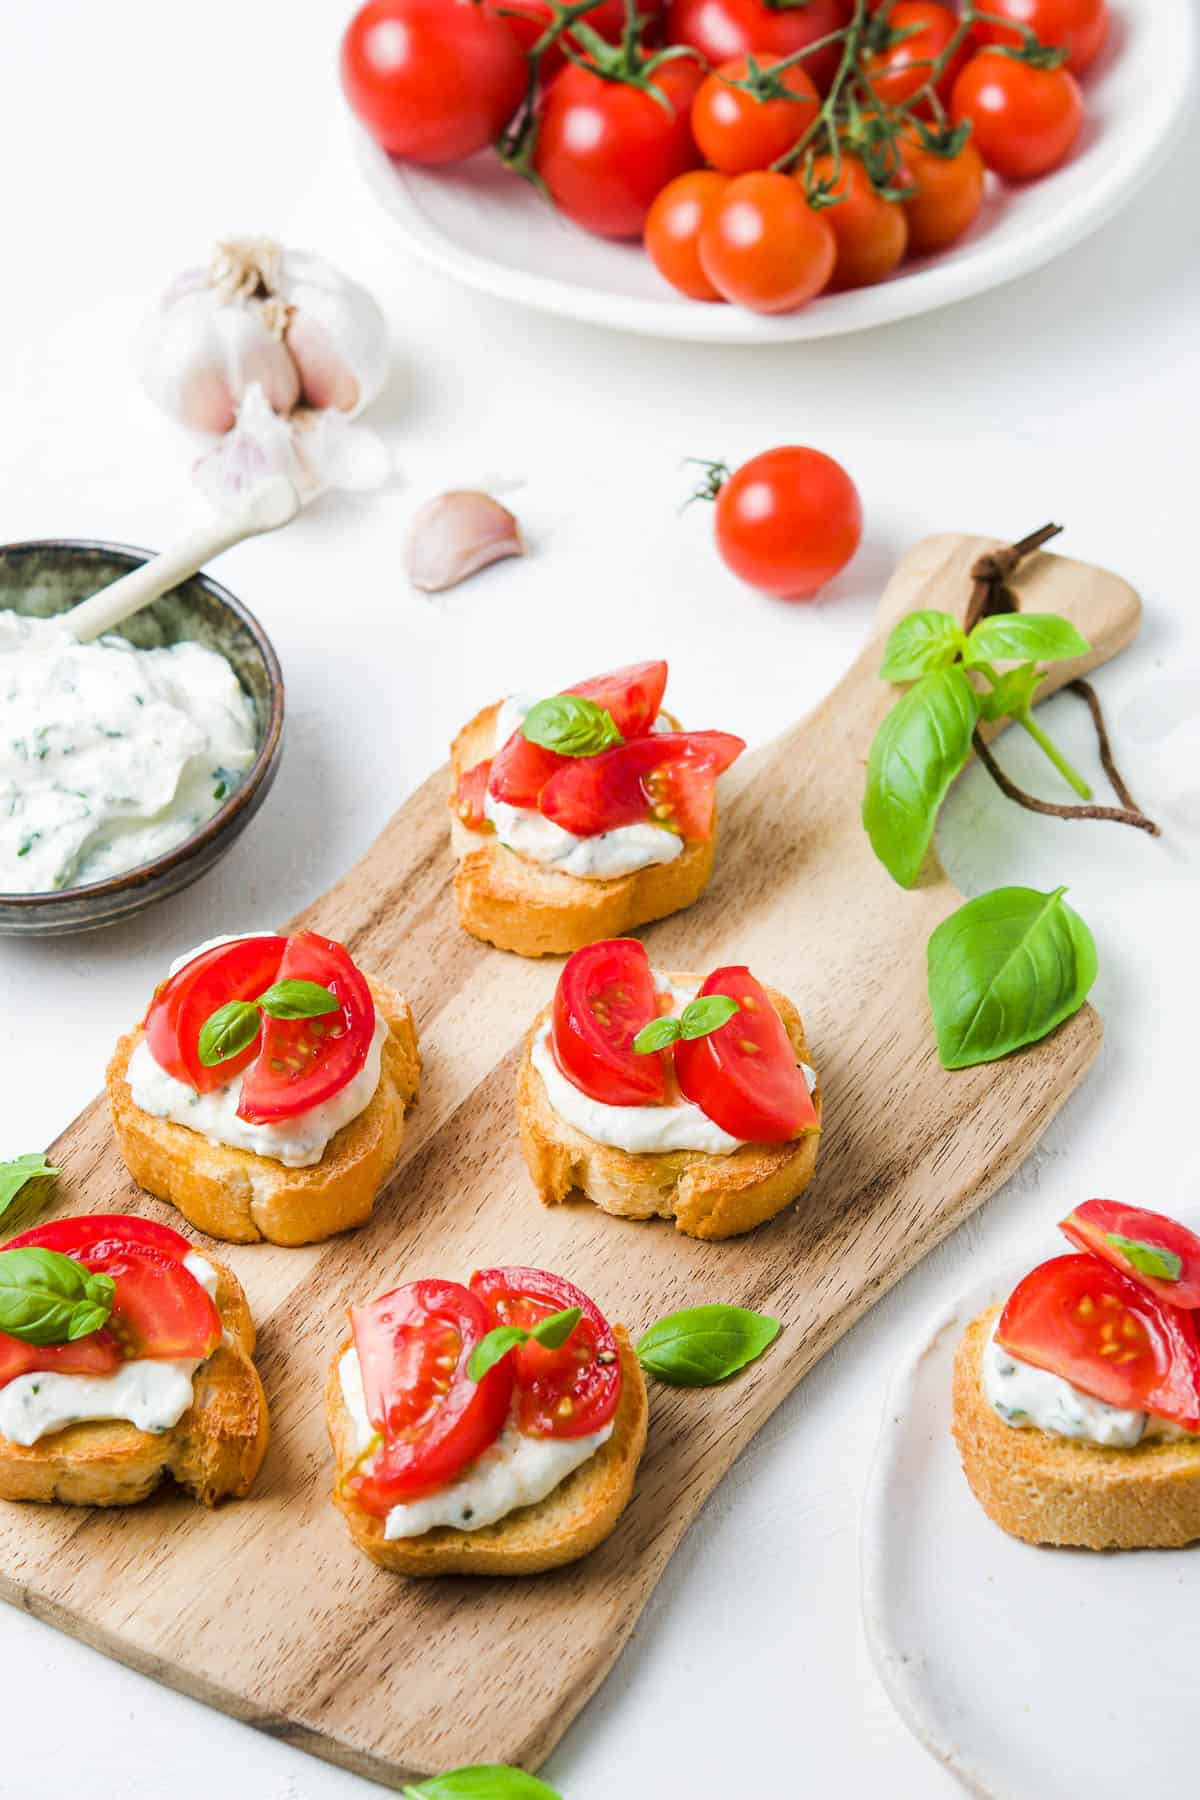 five crostini spread out on a wooden serving board, with some ricotta mixture to the side, garlic cloves and cherry tomatoes around the edge.